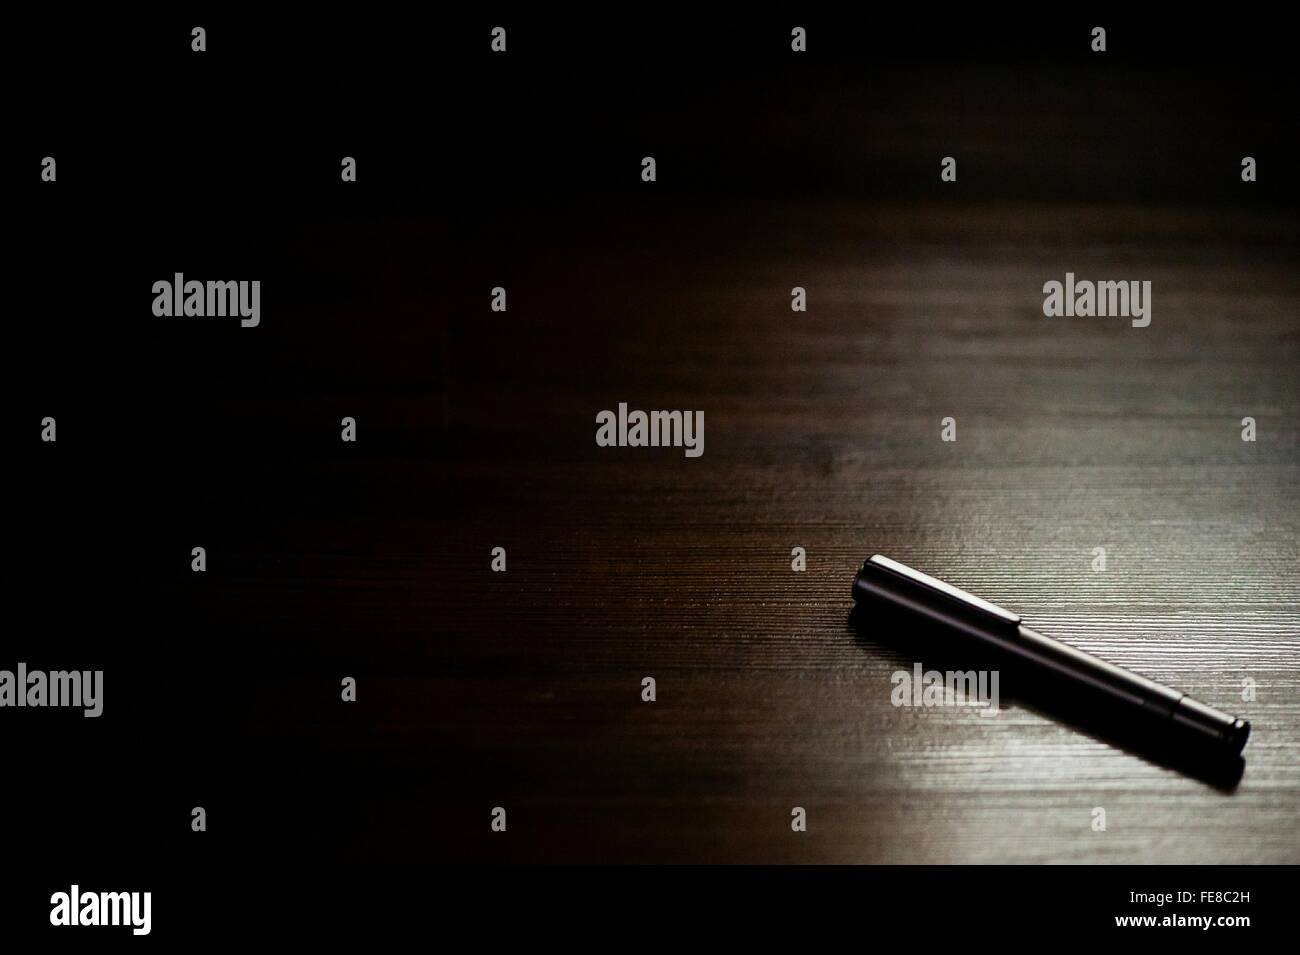 High Angle View Of Fountain Pen On Table - Stock Image